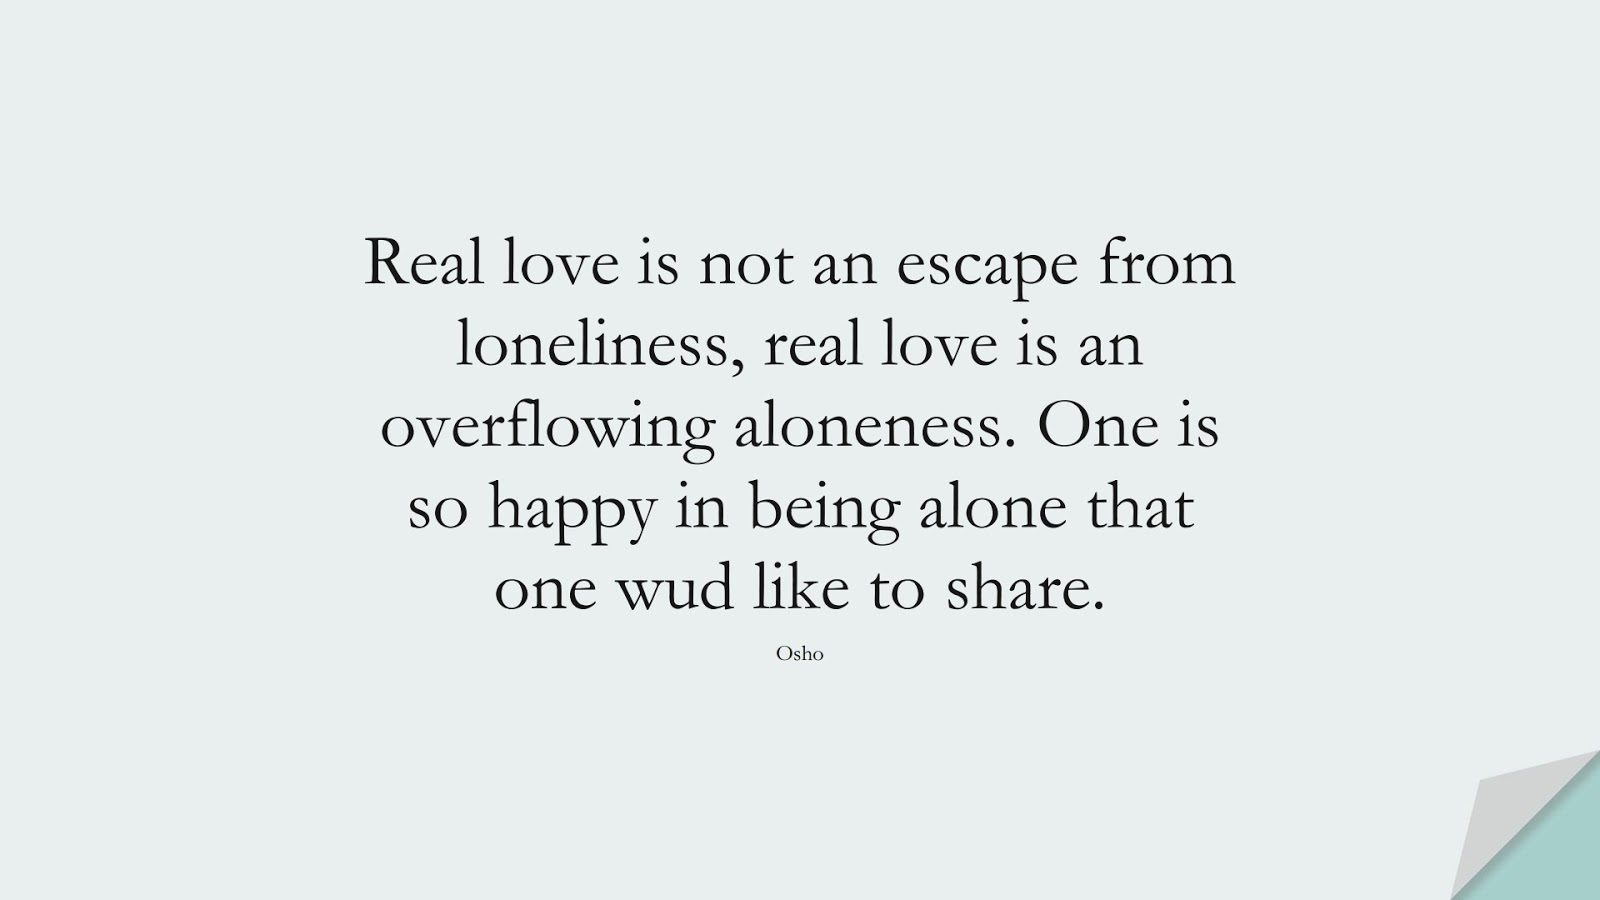 Real love is not an escape from loneliness, real love is an overflowing aloneness. One is so happy in being alone that one wud like to share. (Osho);  #LoveYourselfQuotes